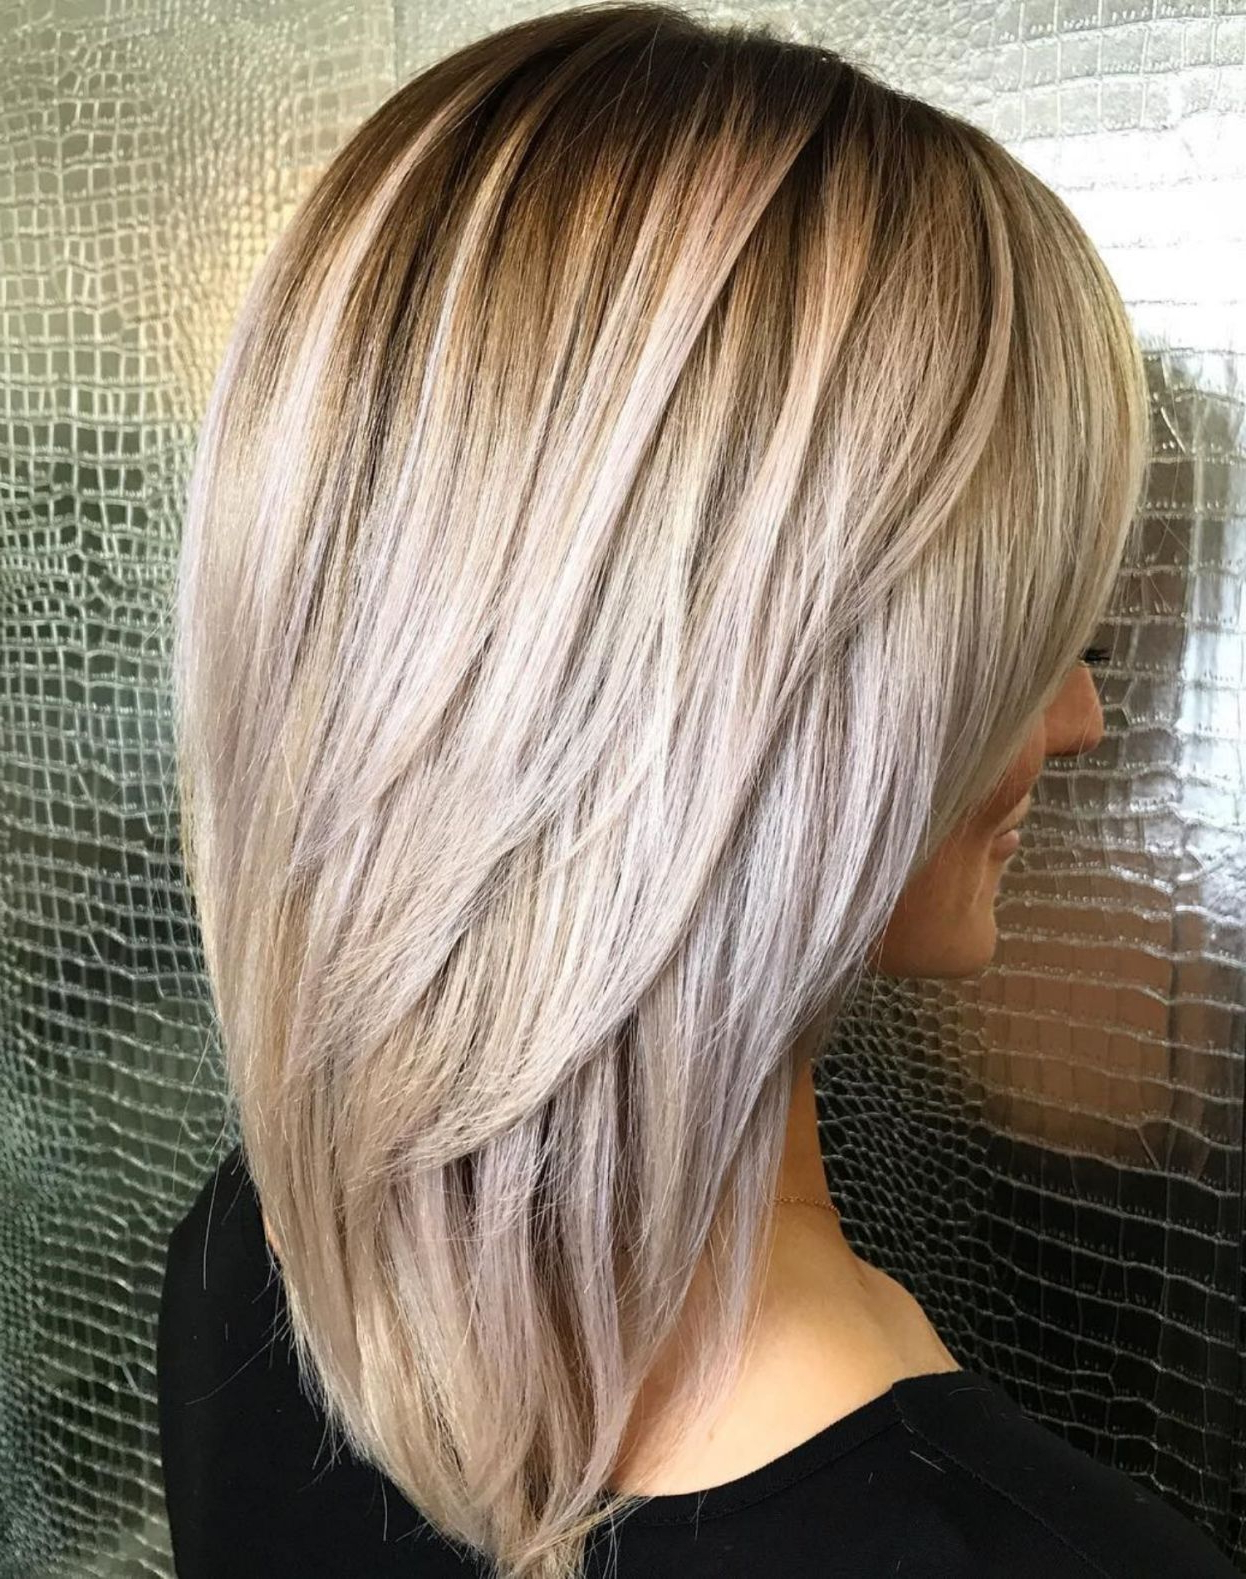 2017 Medium Haircuts Layered With 60 Most Beneficial Haircuts For Thick Hair Of Any Length (View 14 of 20)